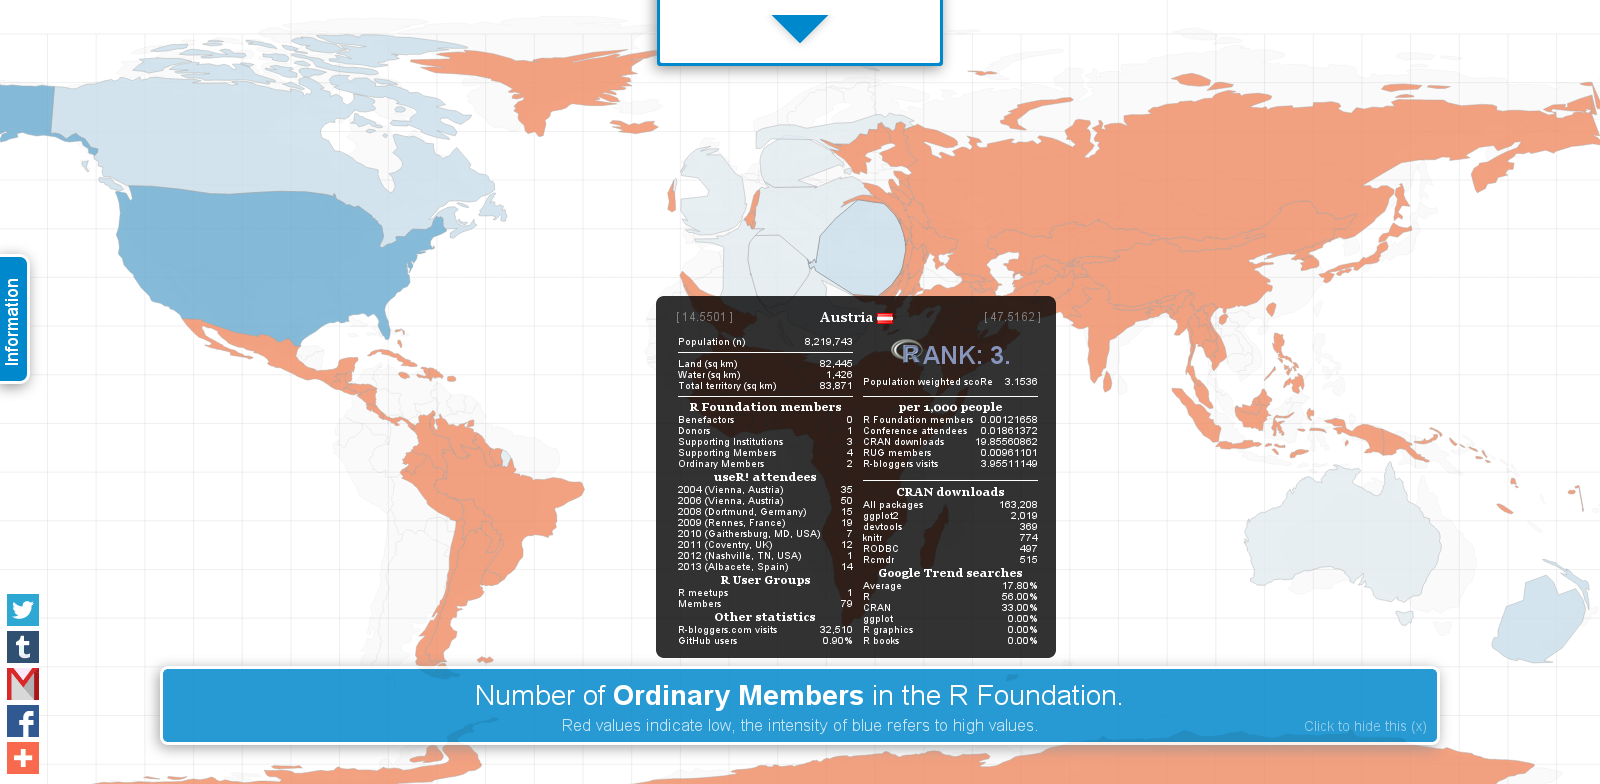 The number of ordinary members in the R Foundation